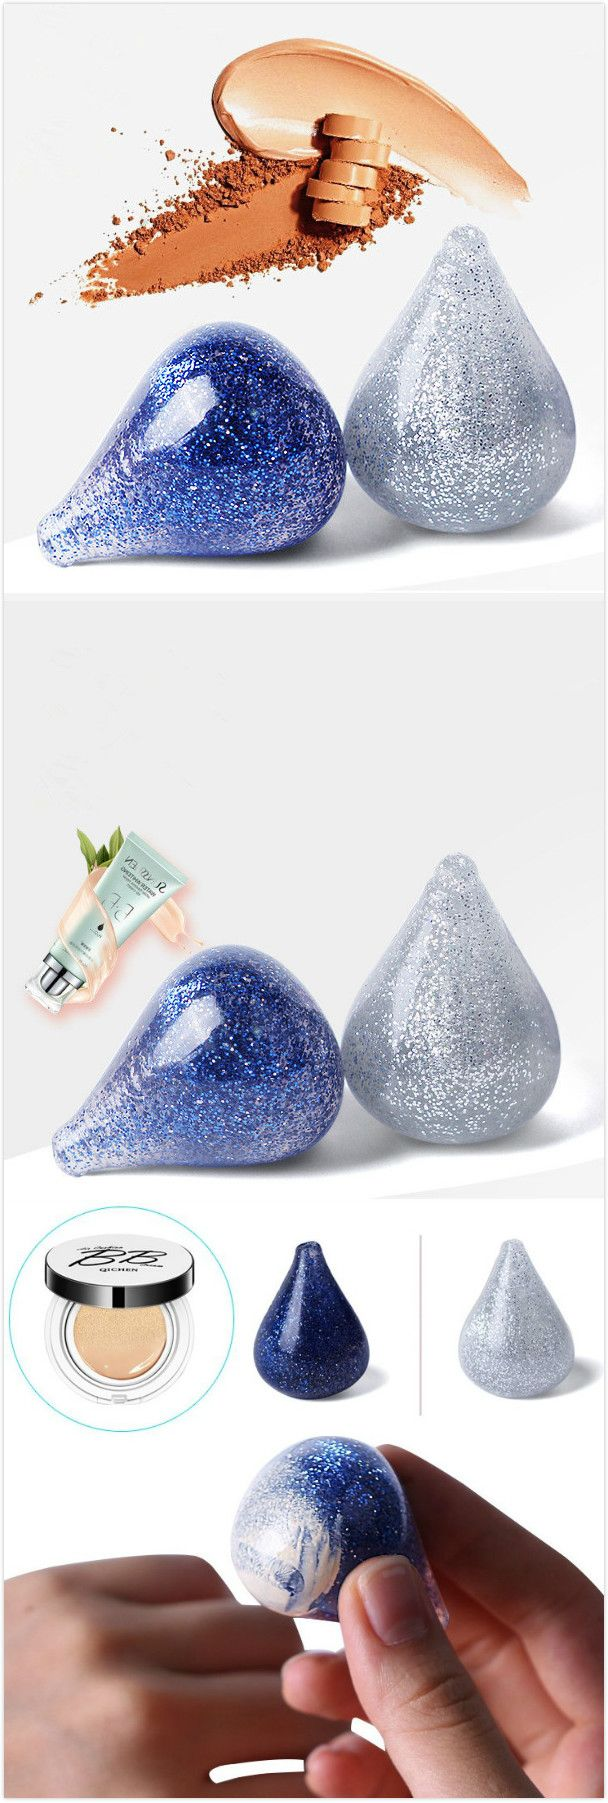 【 Special 2 / US$10.00】Silicone Makeup Puff Water Drop Washable BB Cream Foundation Silver Dark Blue Flashing Puffs